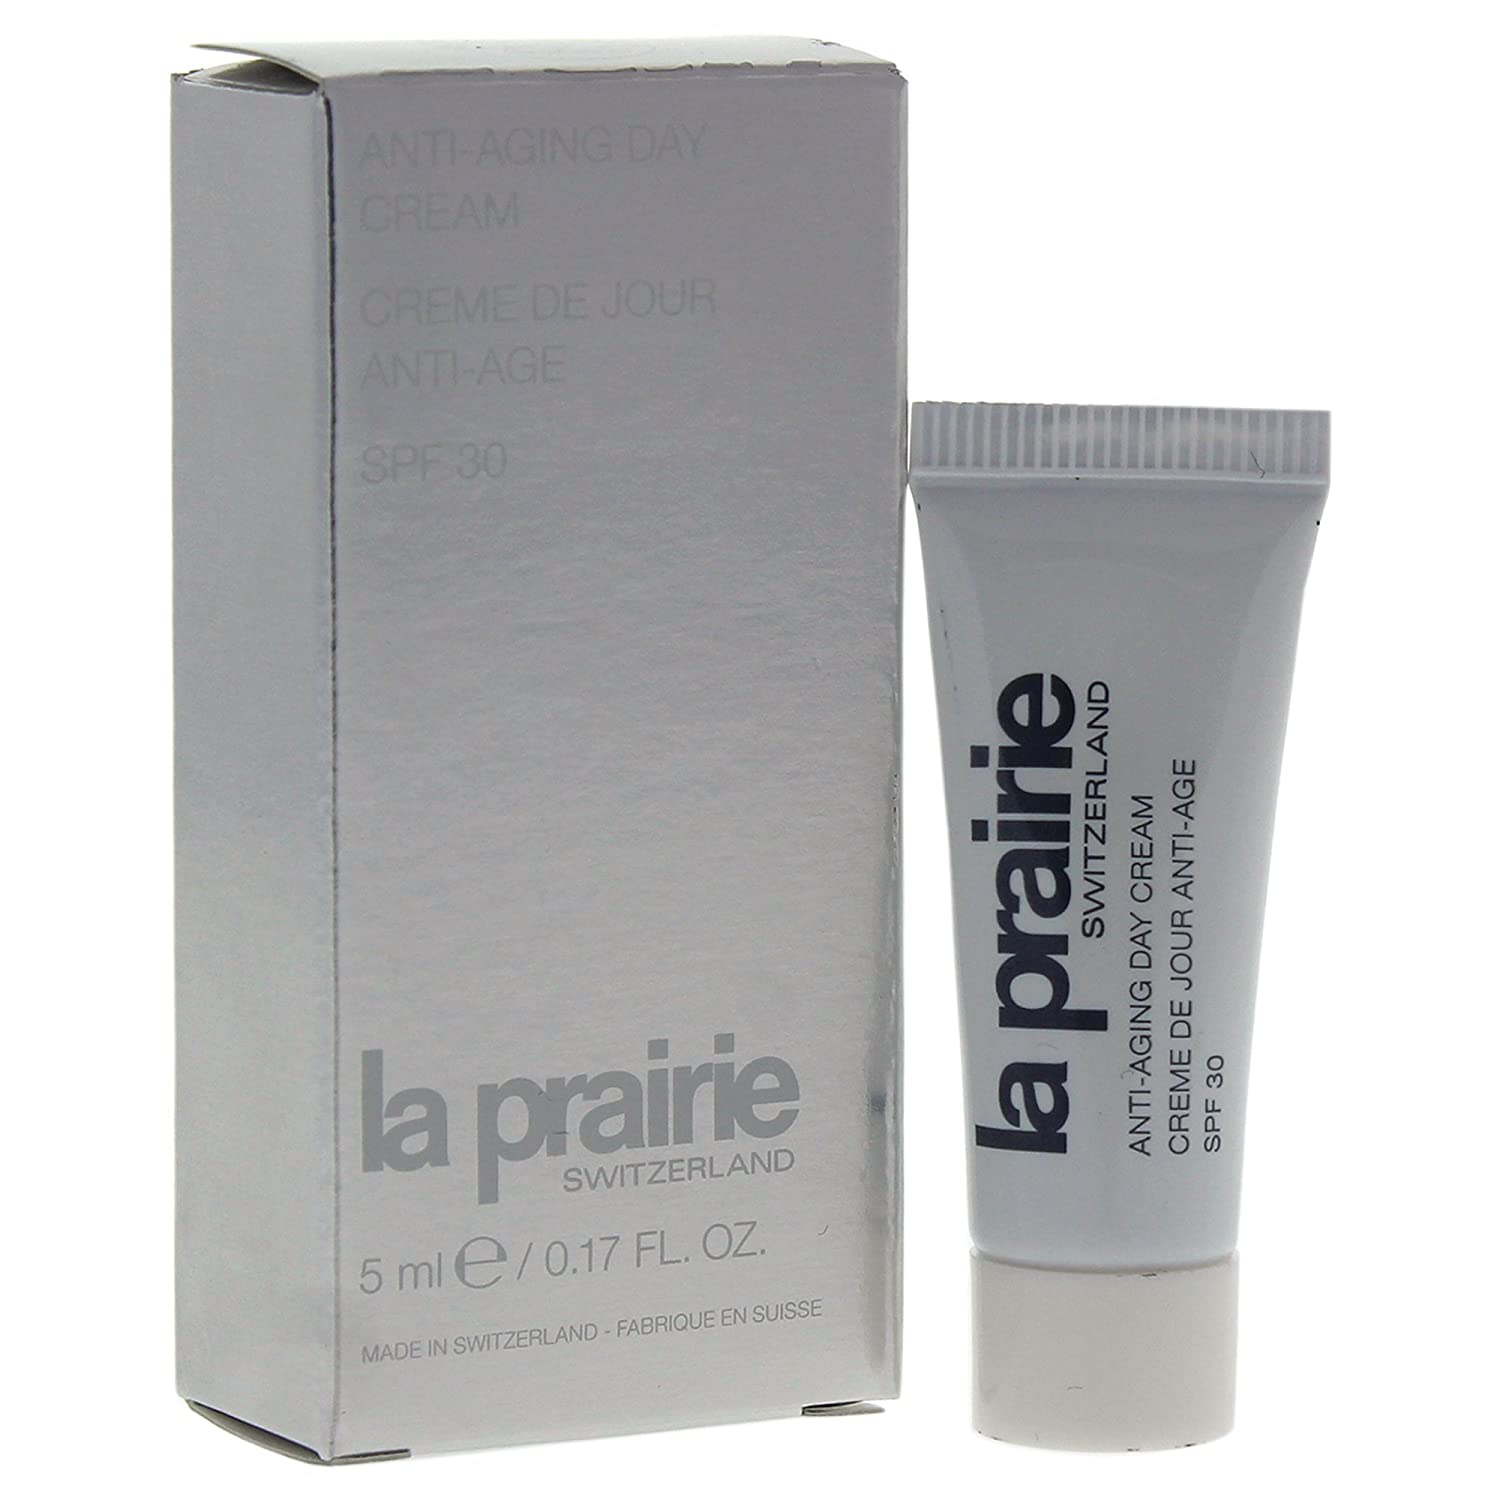 La Prairie Anti Aging Spf 30 Day Cream, 0.17 Ounce by La Prairie